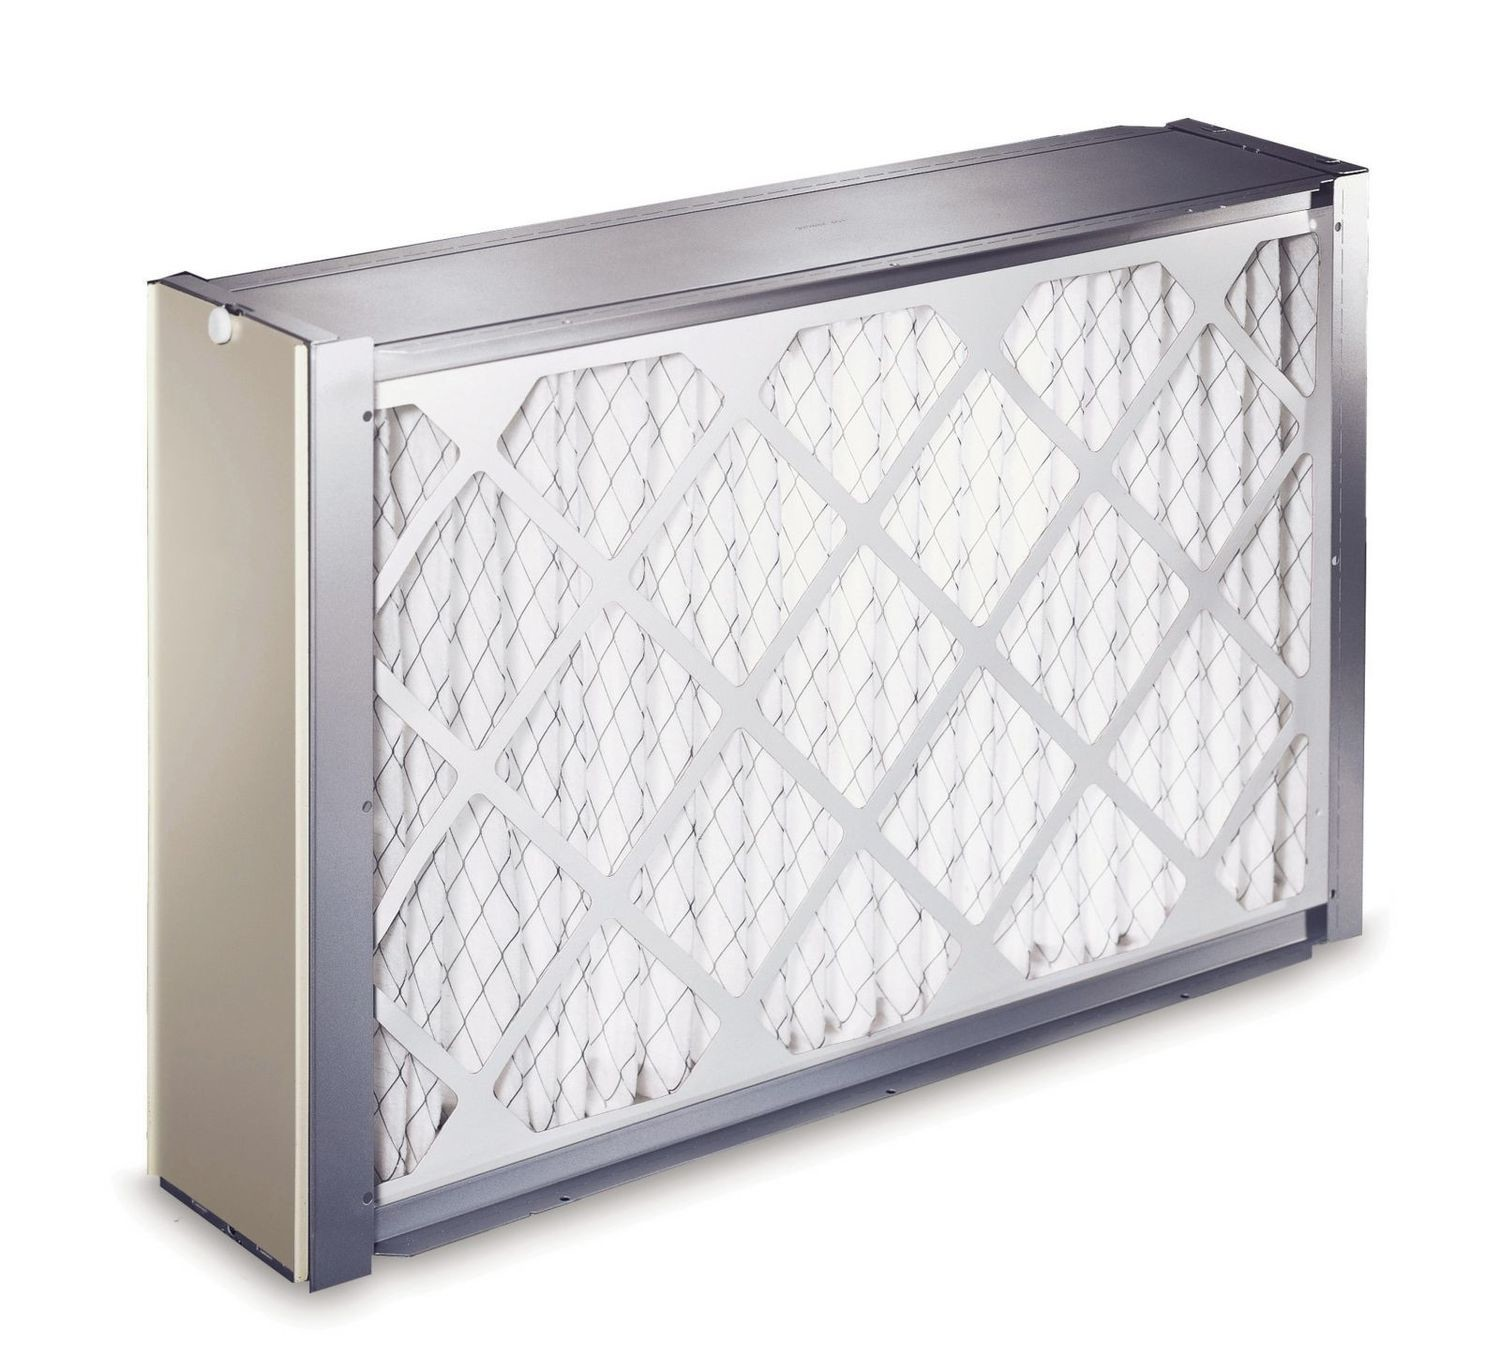 """FILCABXL0016 16"""" x 25"""" Mechanical Air Cleaner Filter Cabinet - Filters not included"""